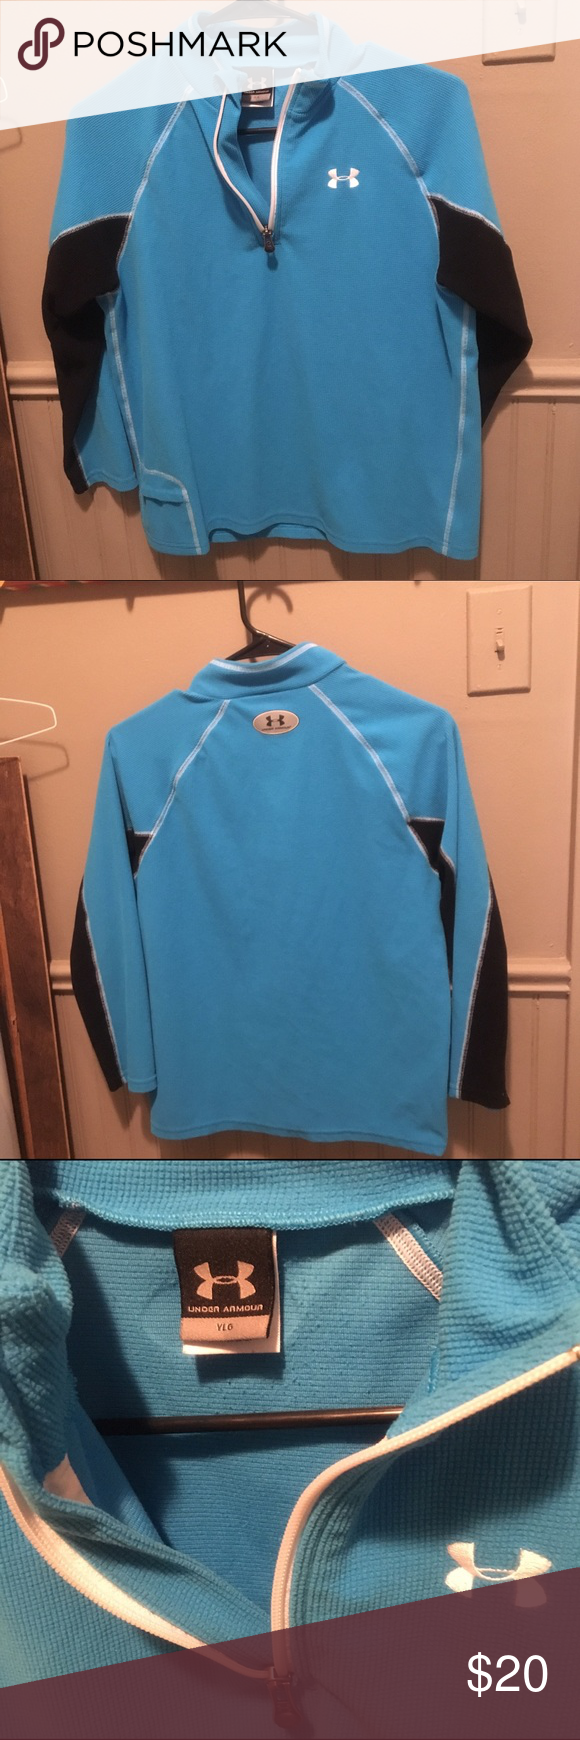 New Under Armour Youth Large Under Armour  Youth Large  Nwot Under Armour Jackets & Coats